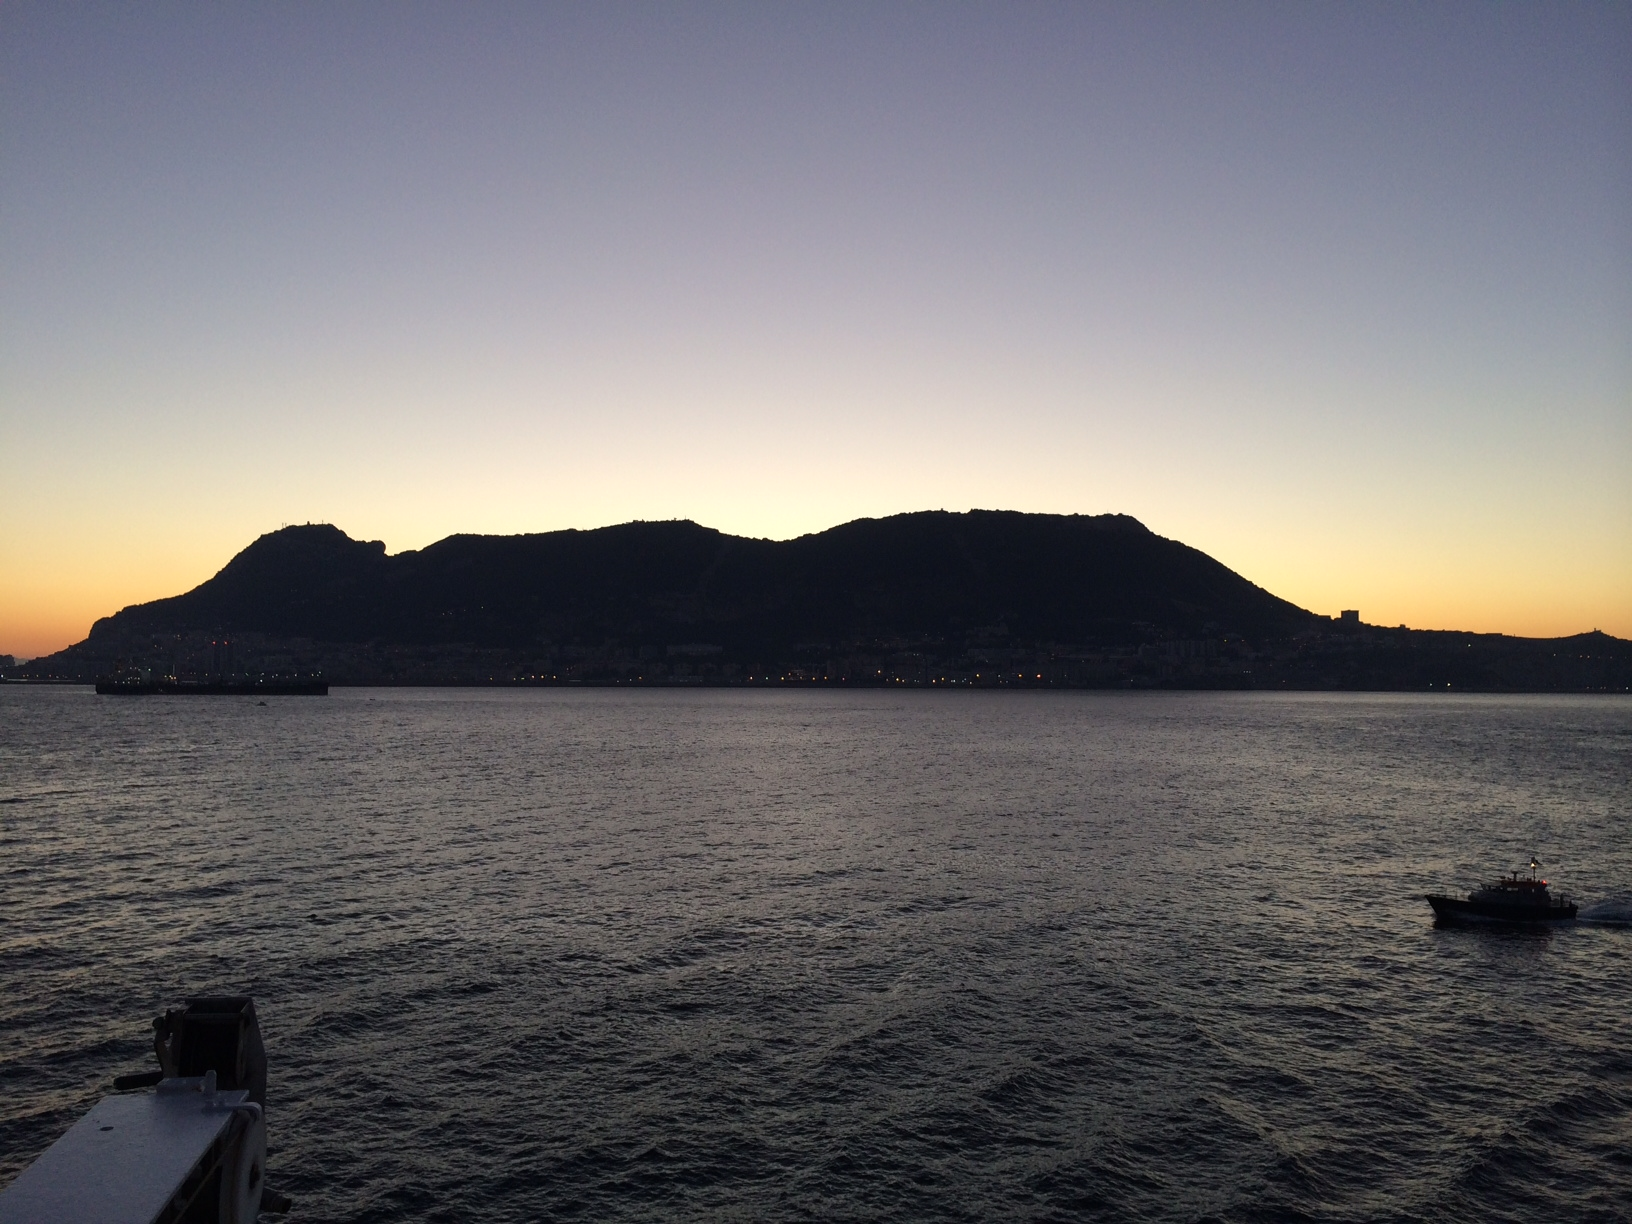 The Rock of Gibraltar, seen from on board Azamara Journey during PerryGolf's 2014 Iberian Peninsula Golf Cruise.